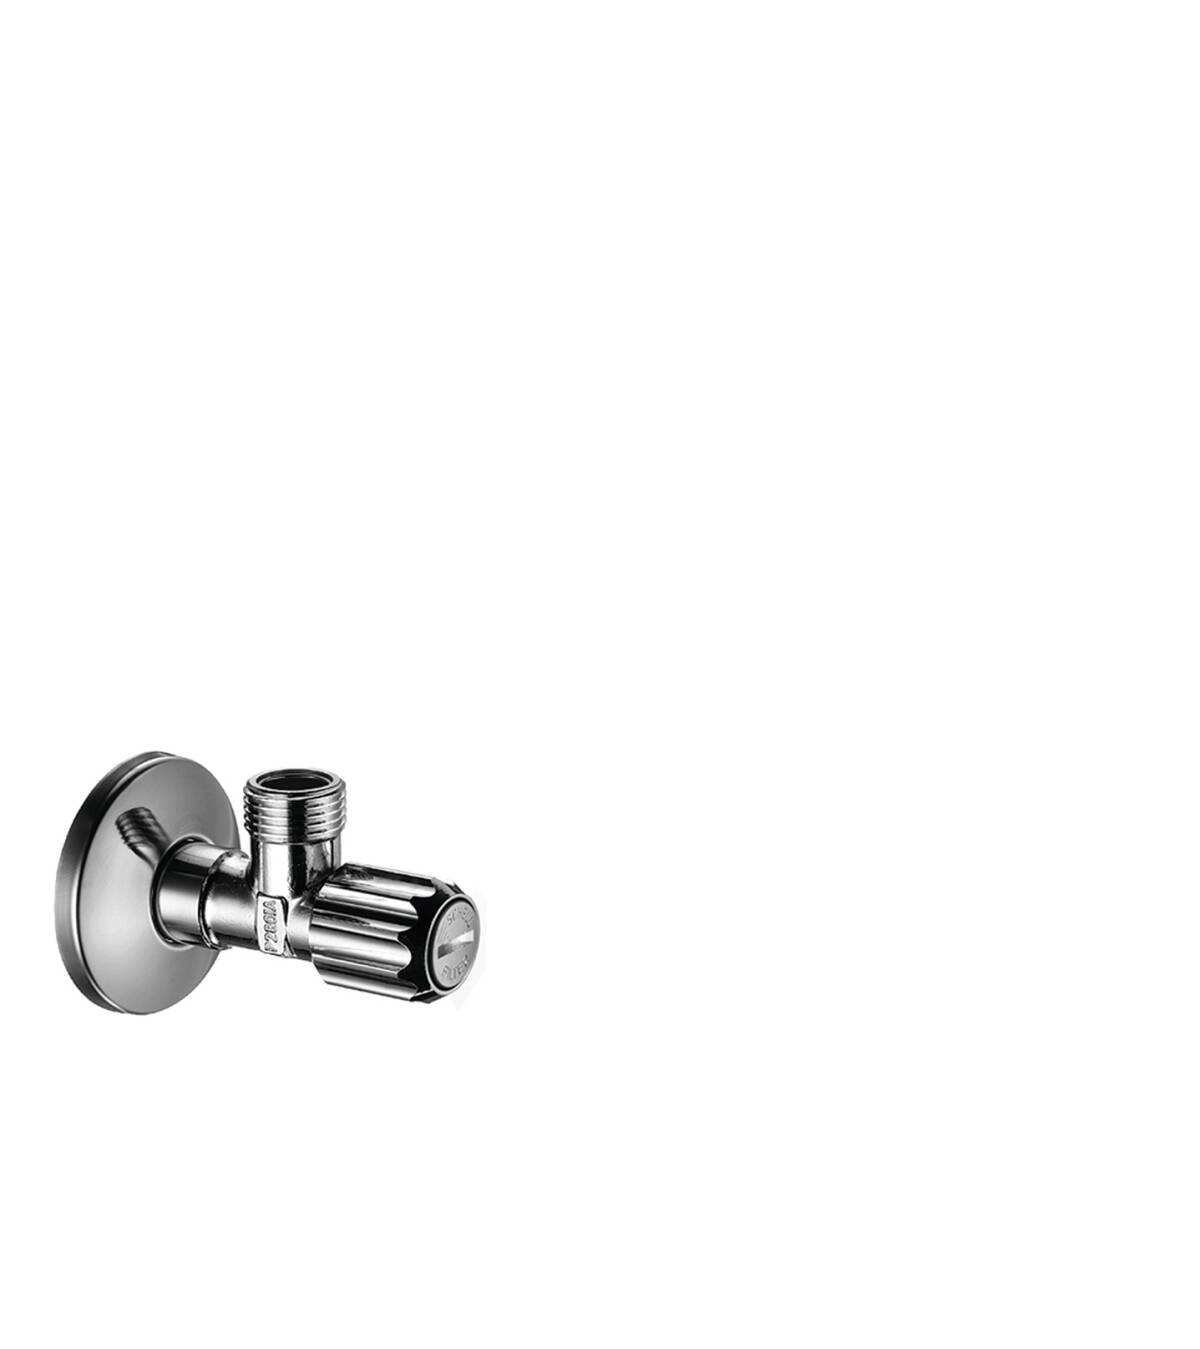 Angle valve with microfilter outlet G 3/8, Chrome, 51308000